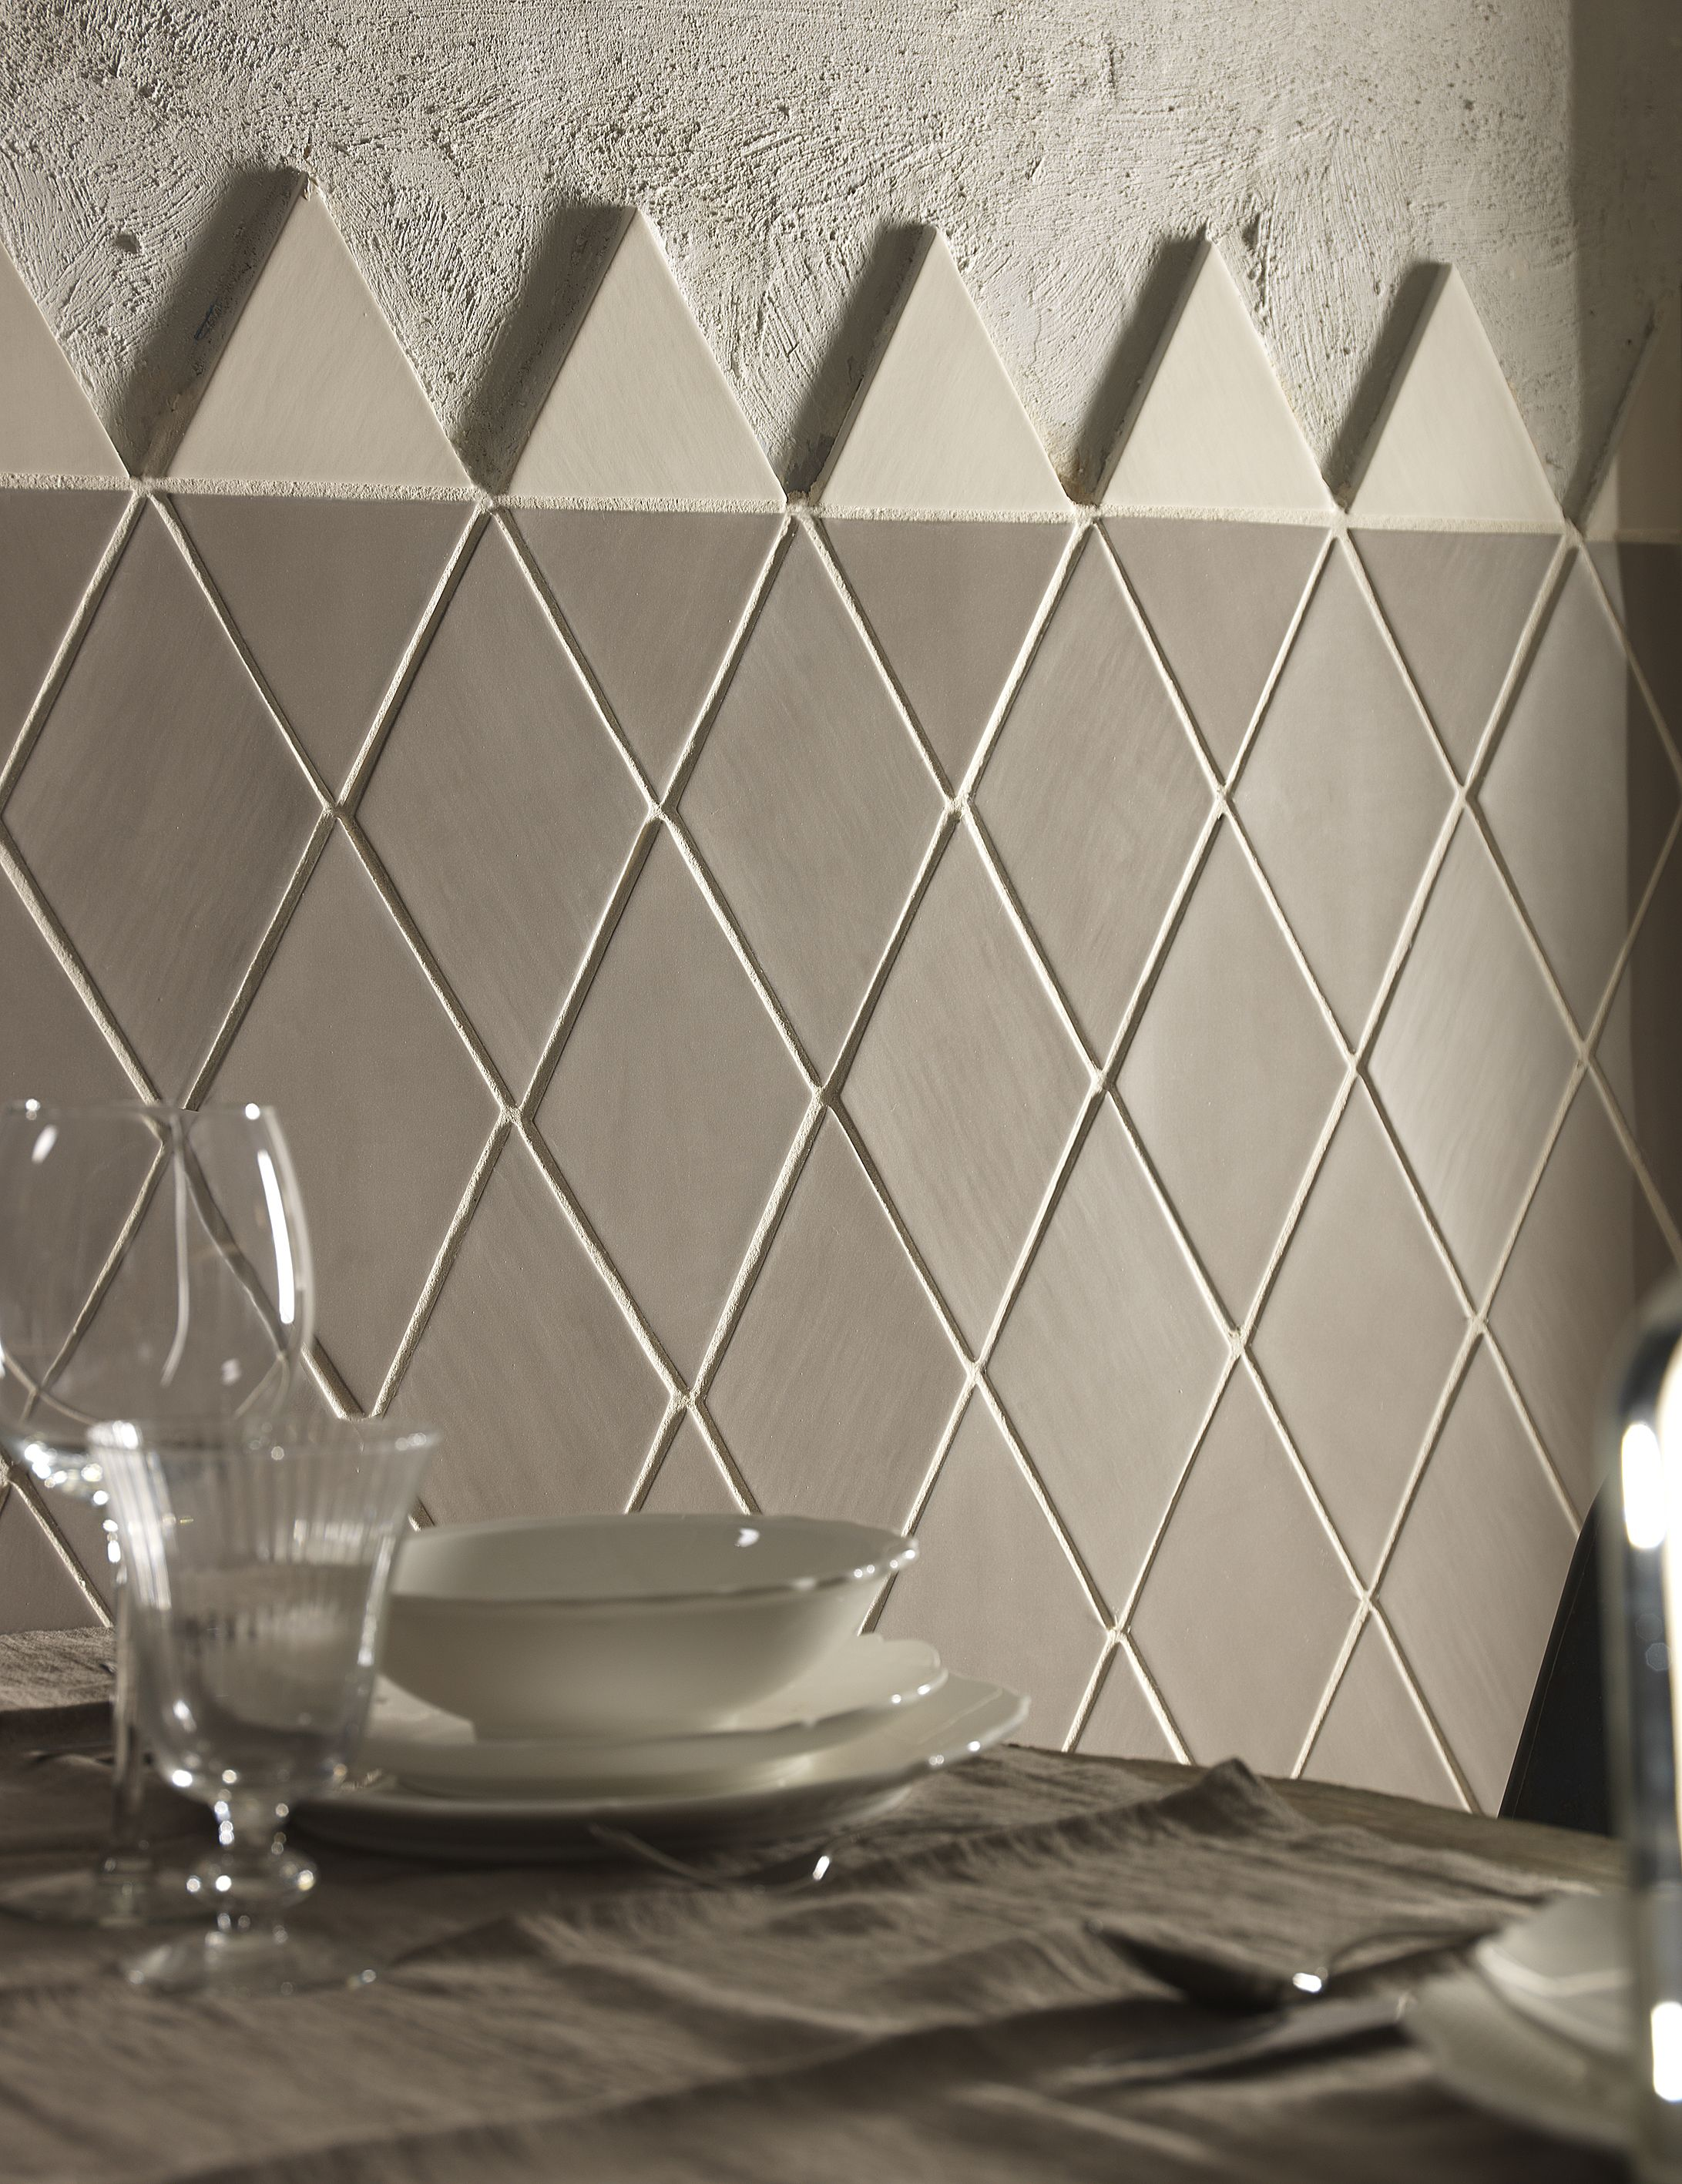 Geomat Represents A New Concept Of Ceramic Covering In Which Shape And Material Merge To Generate Contemporary Products With Diamond Tile Tile Suppliers Tiles